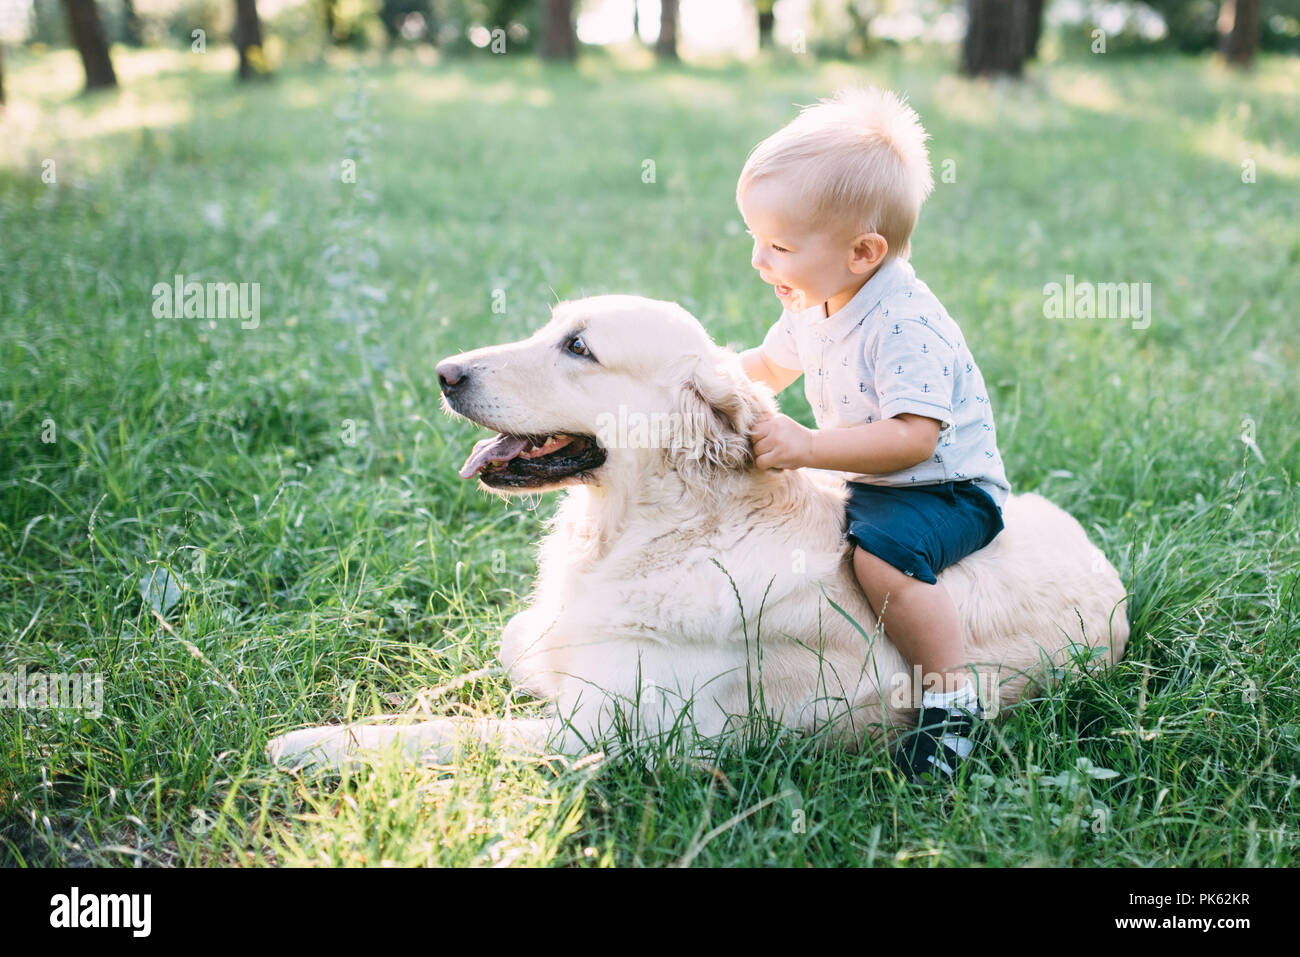 Little child playing with Labrador retriever dog together in wood. - Stock Image